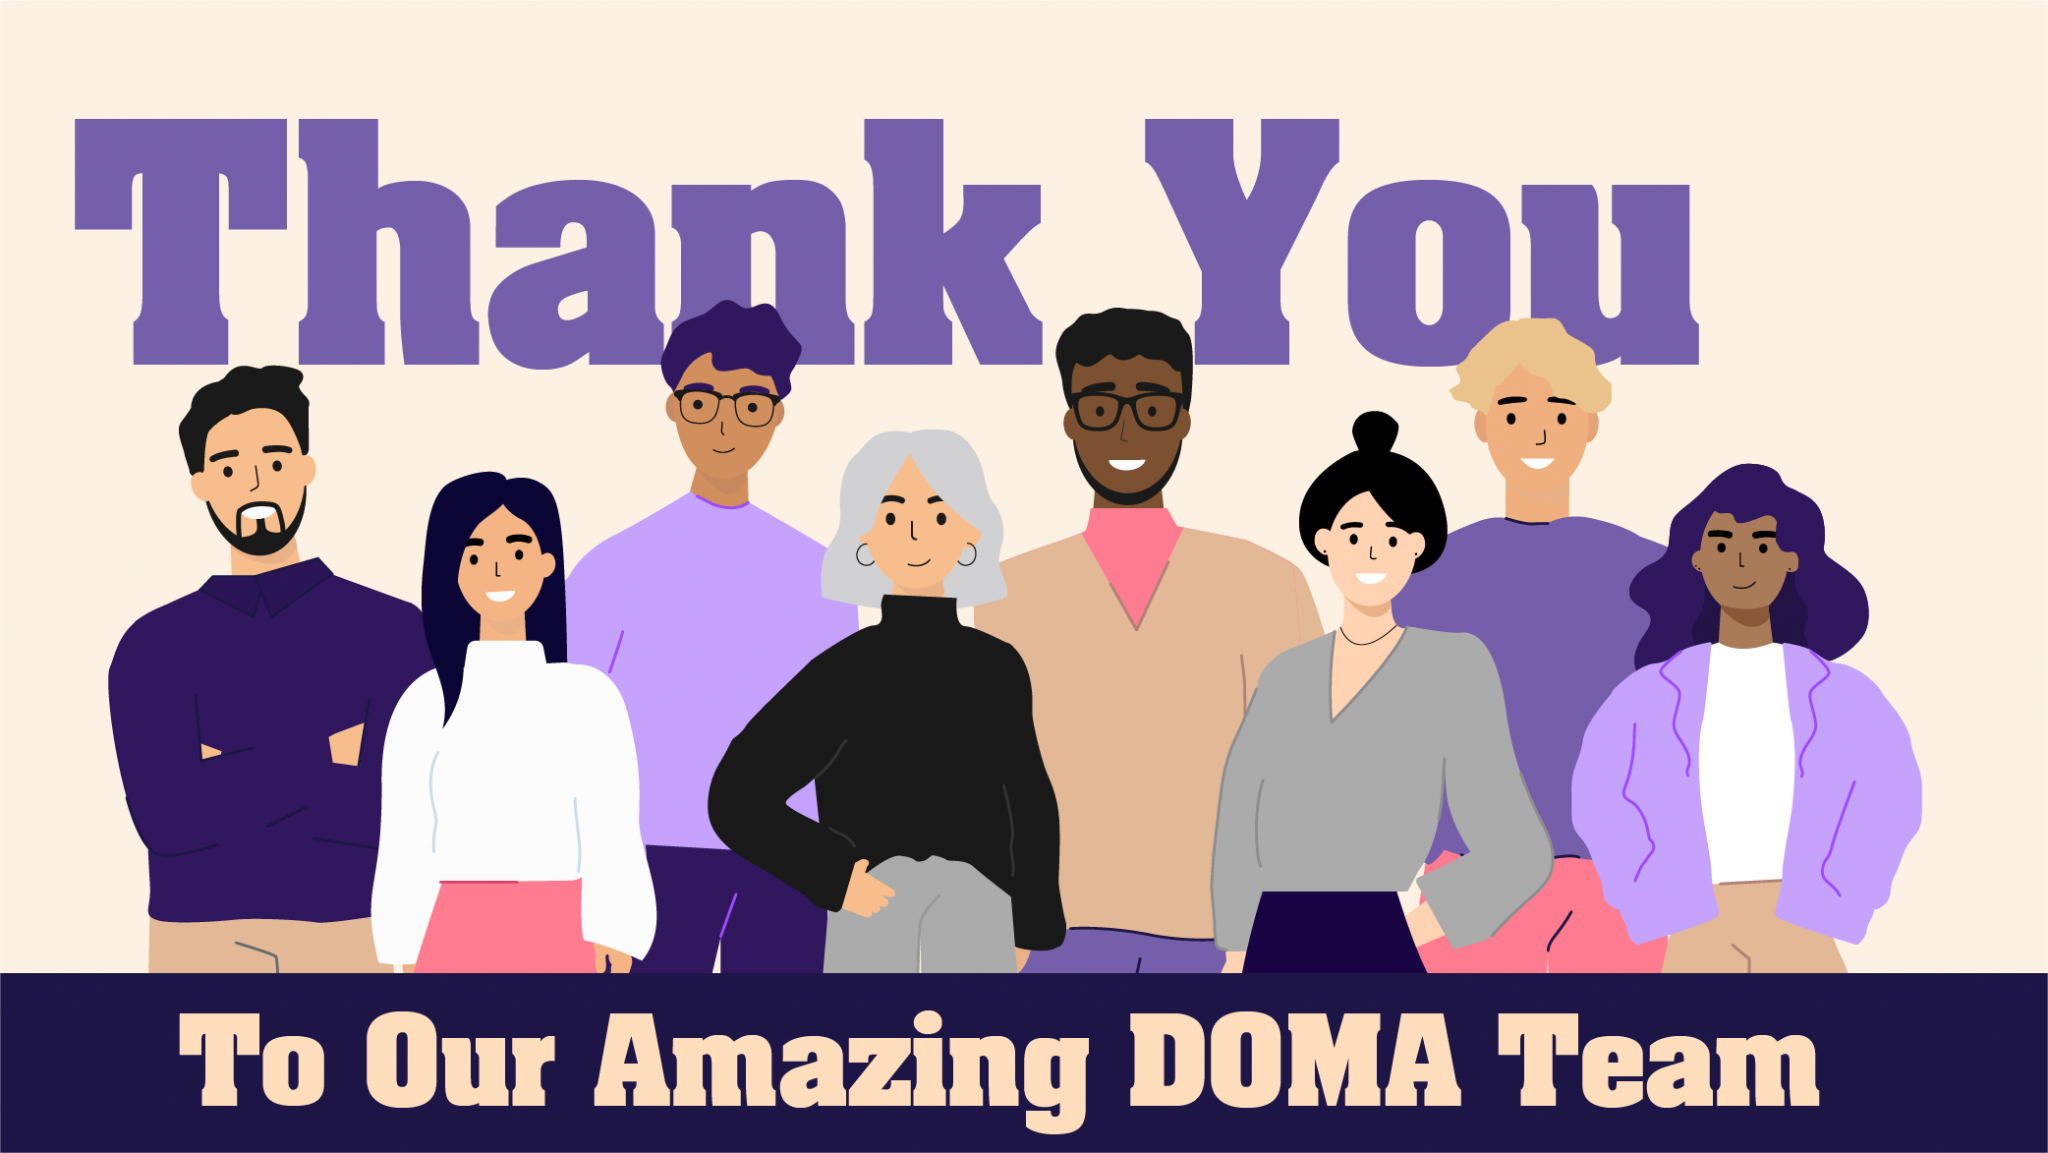 Thank you to our amazing DOMA team